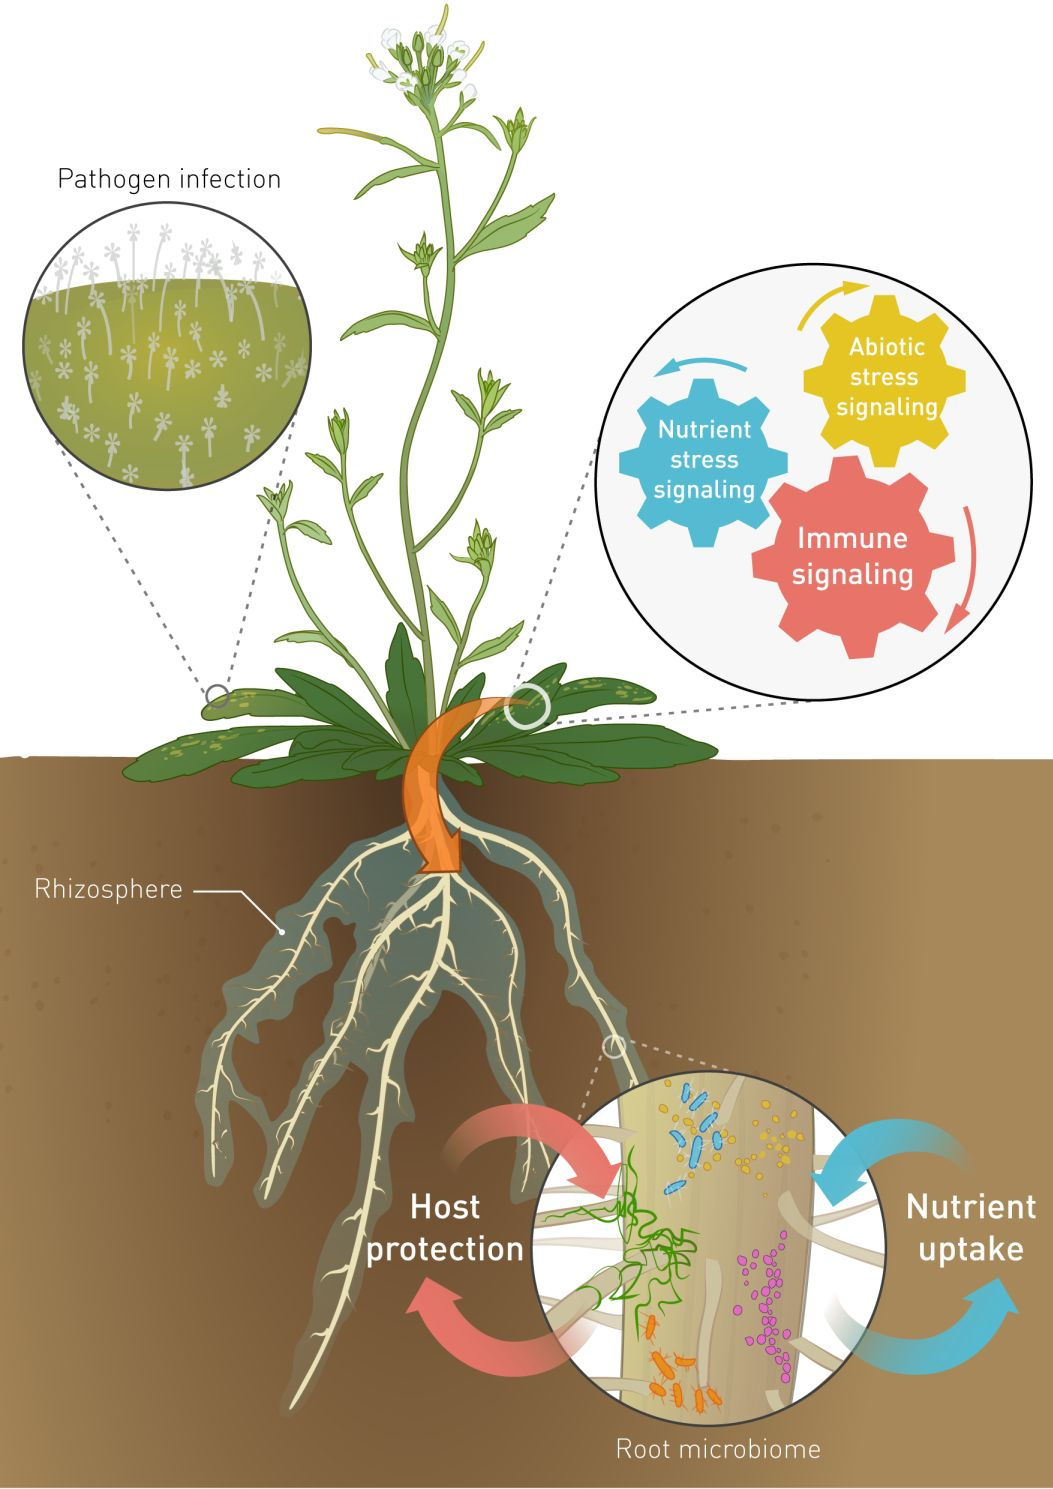 Plants Modify Microbial Communities On Their Roots To Warn